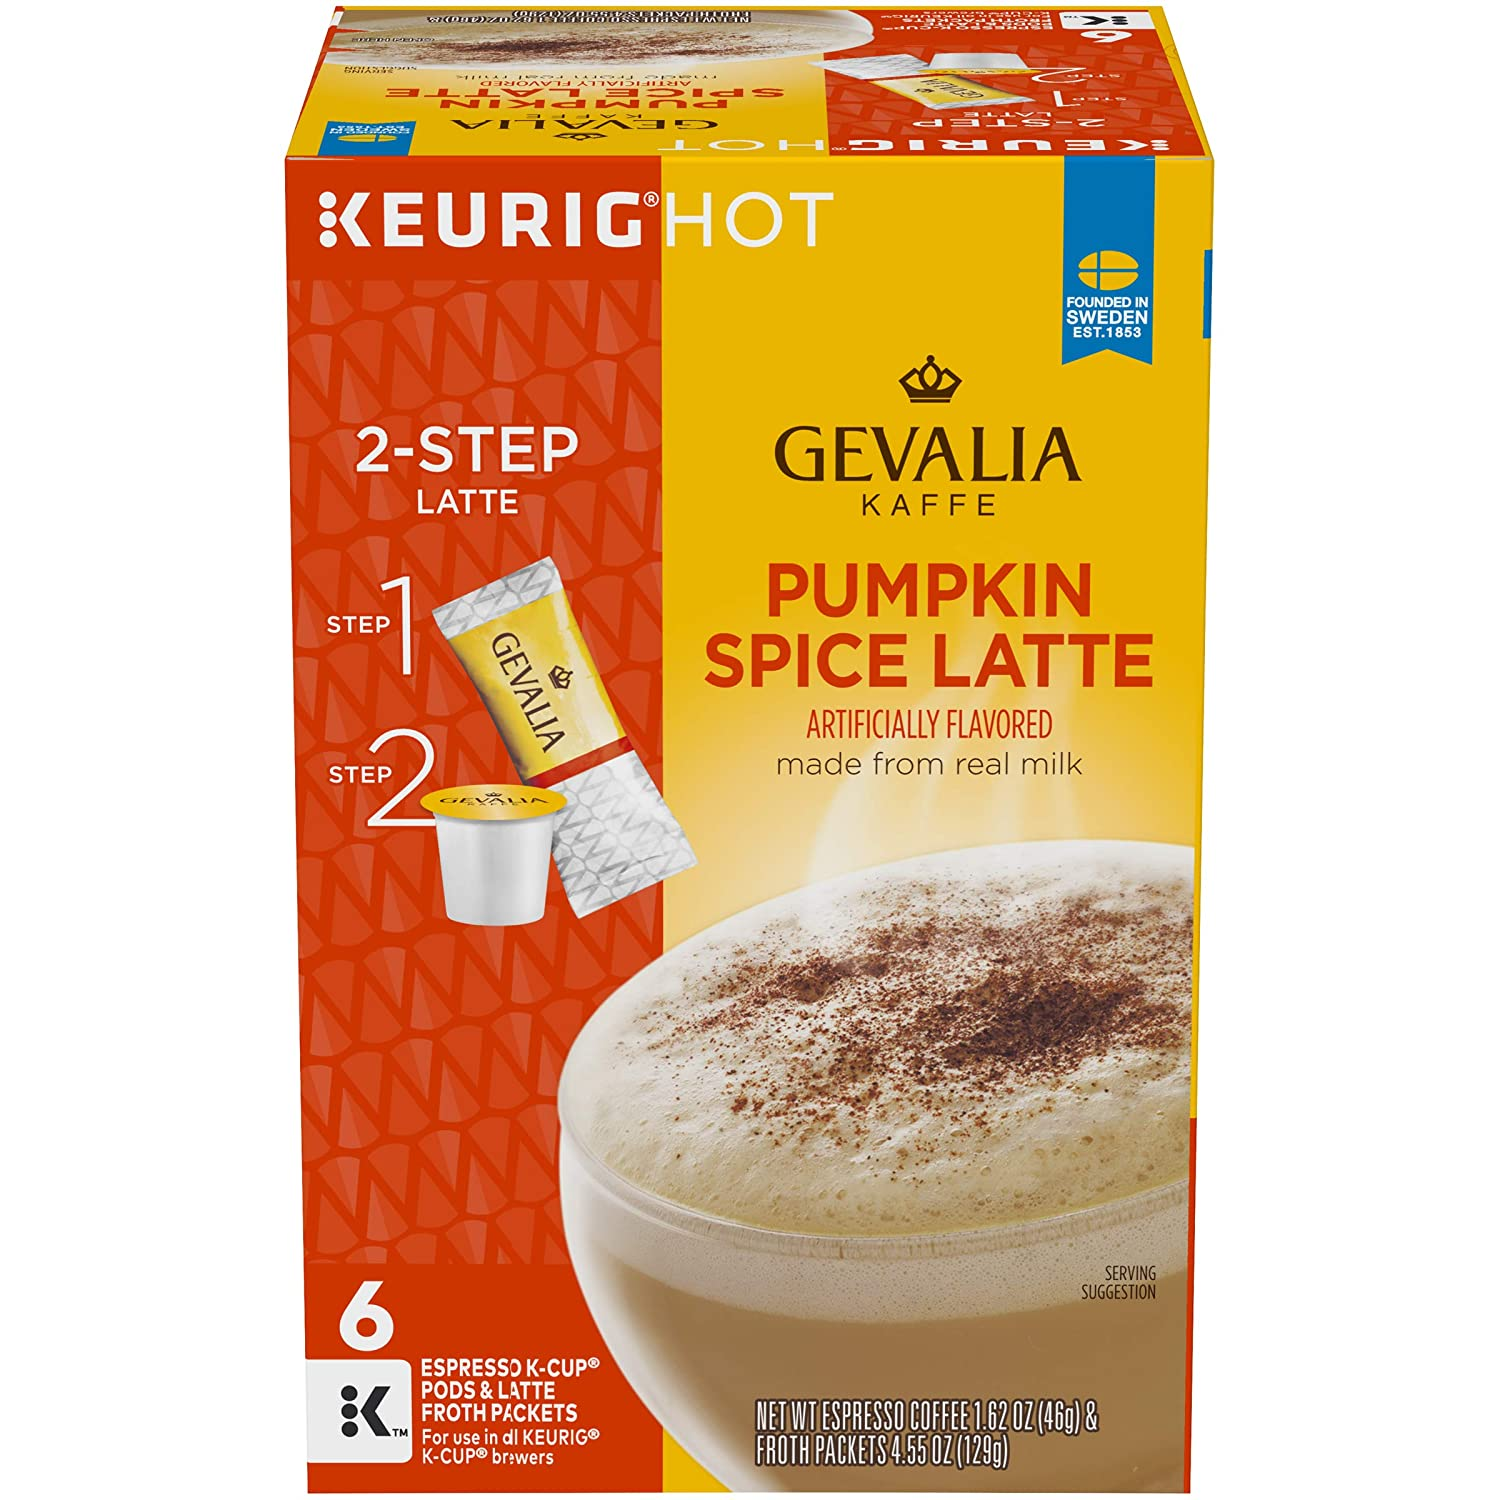 Gevalia Pumpkin Spice Latte Espresso Keurig K Cup Coffee Pods & Froth Packets (6 Count)